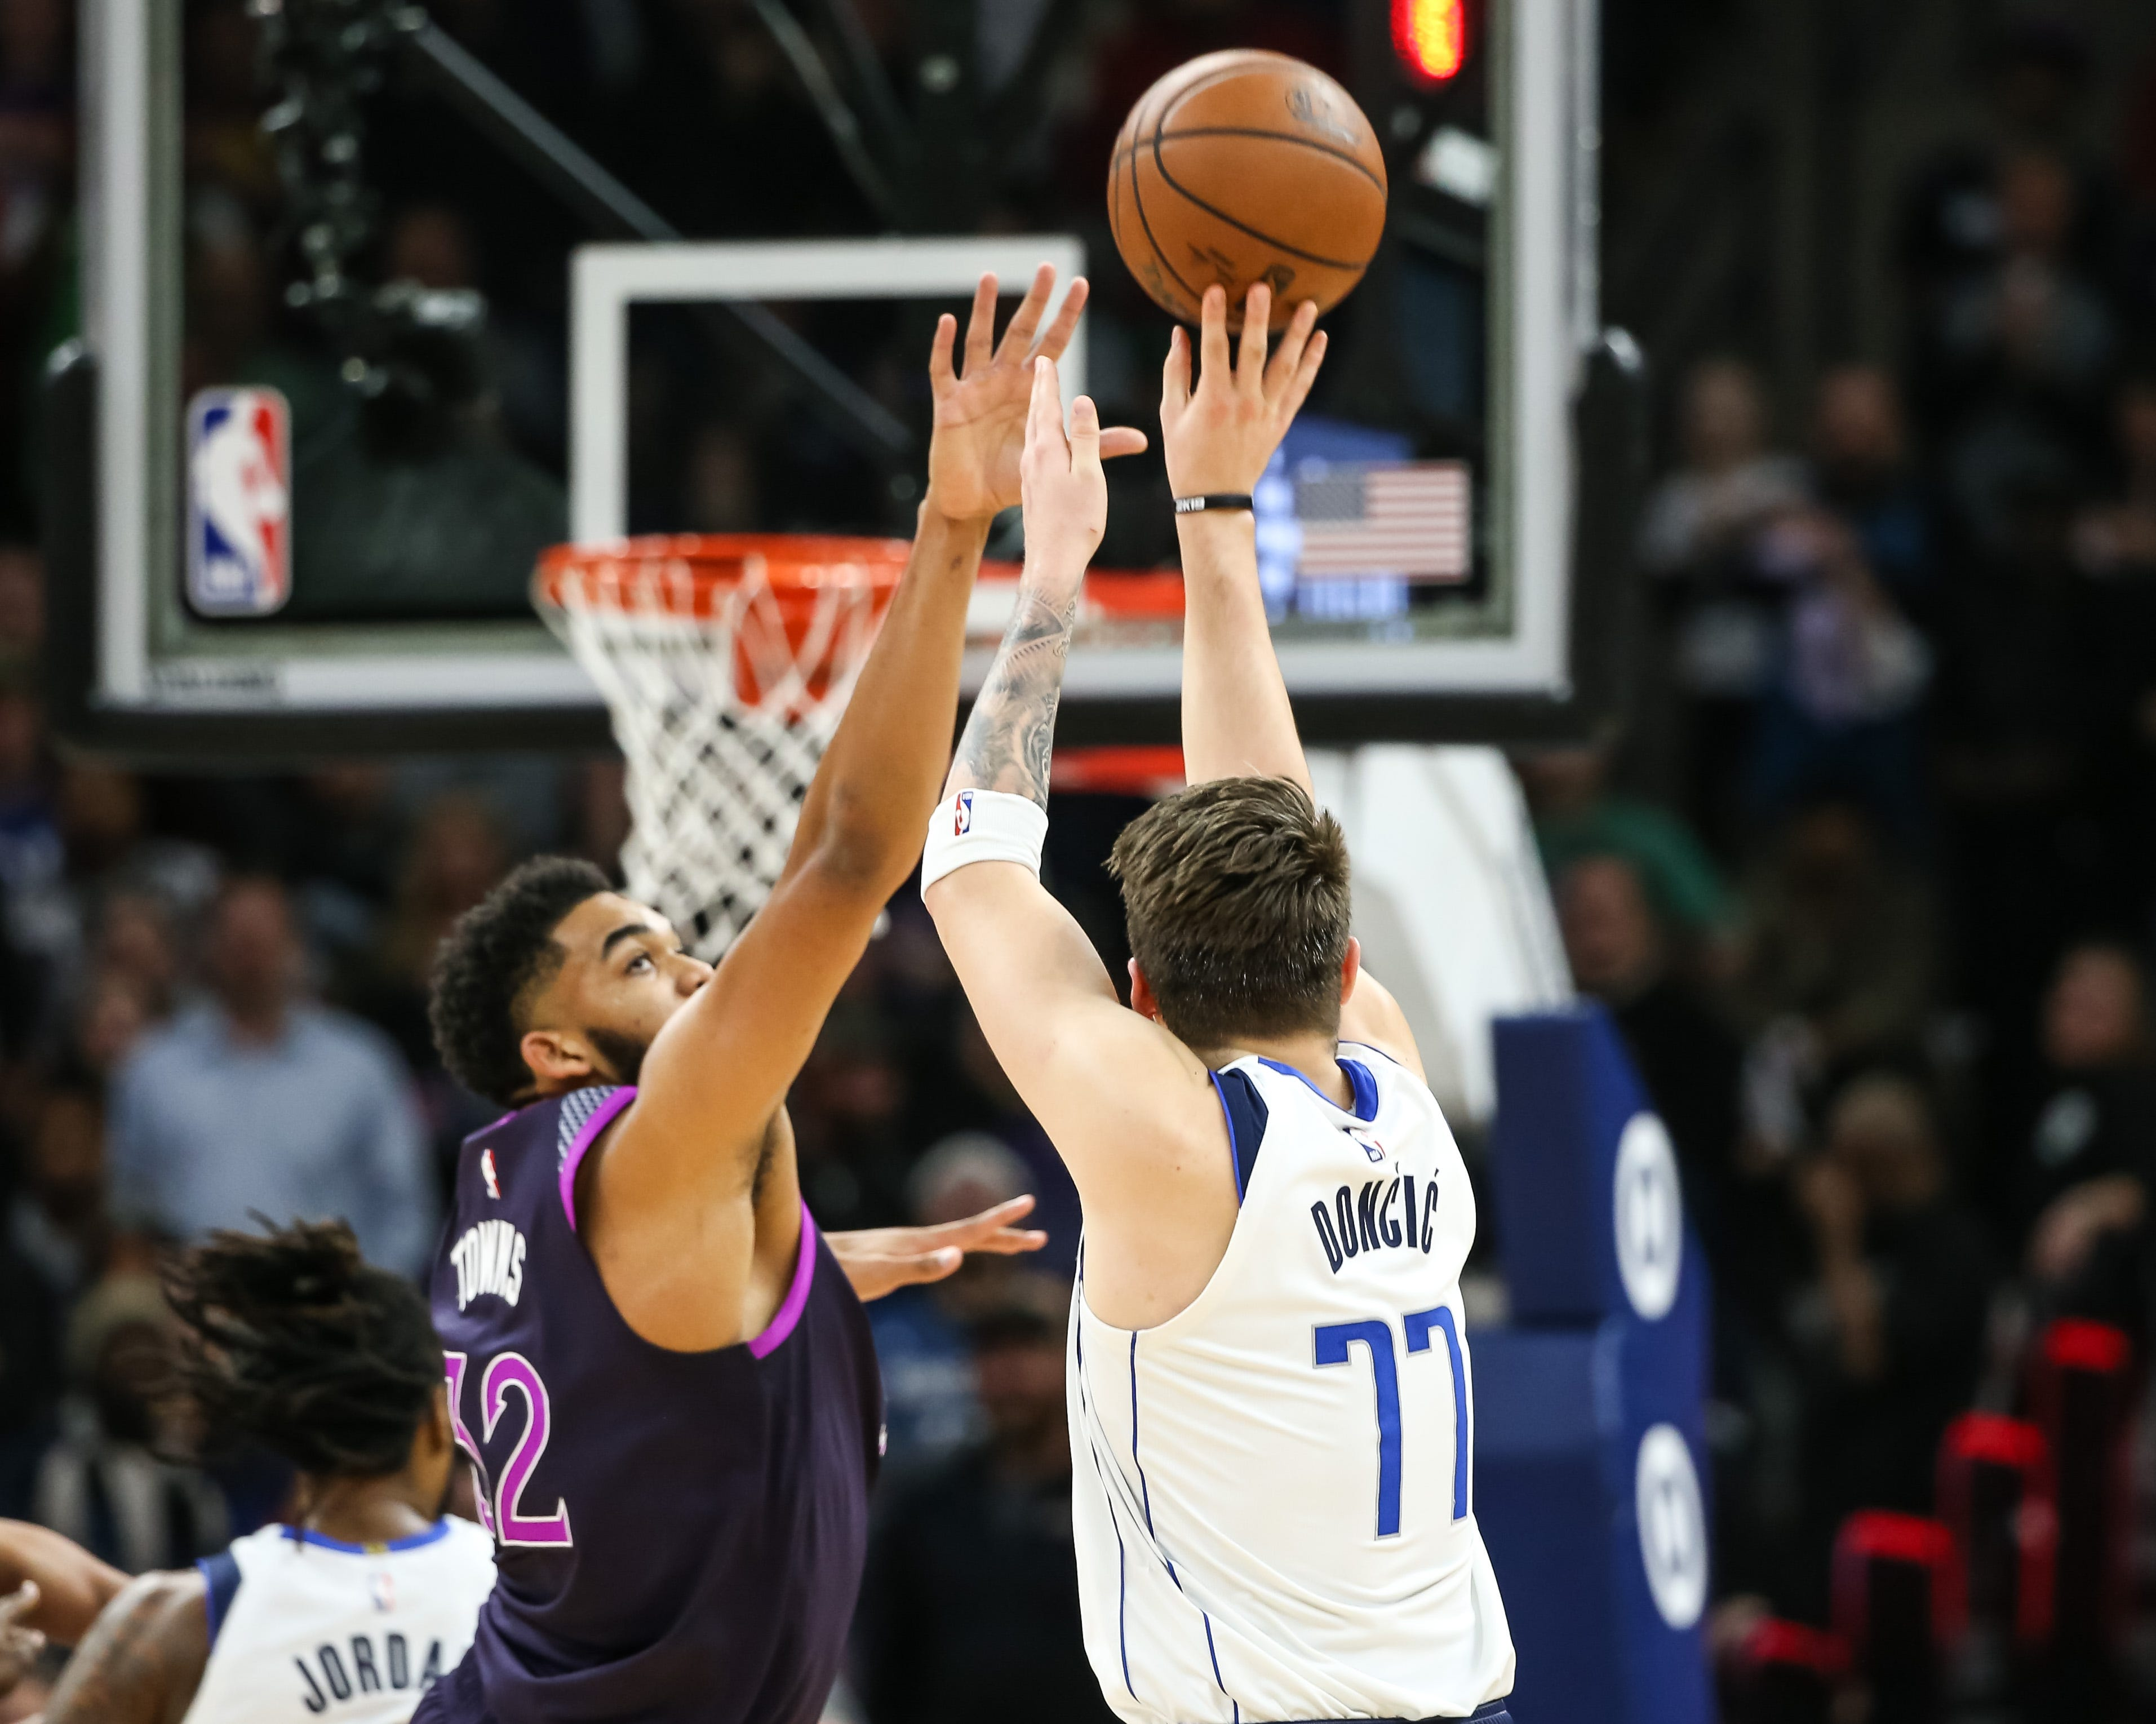 Luka Doncic sinks the go-ahead 3 over Karl-Anthony Towns.